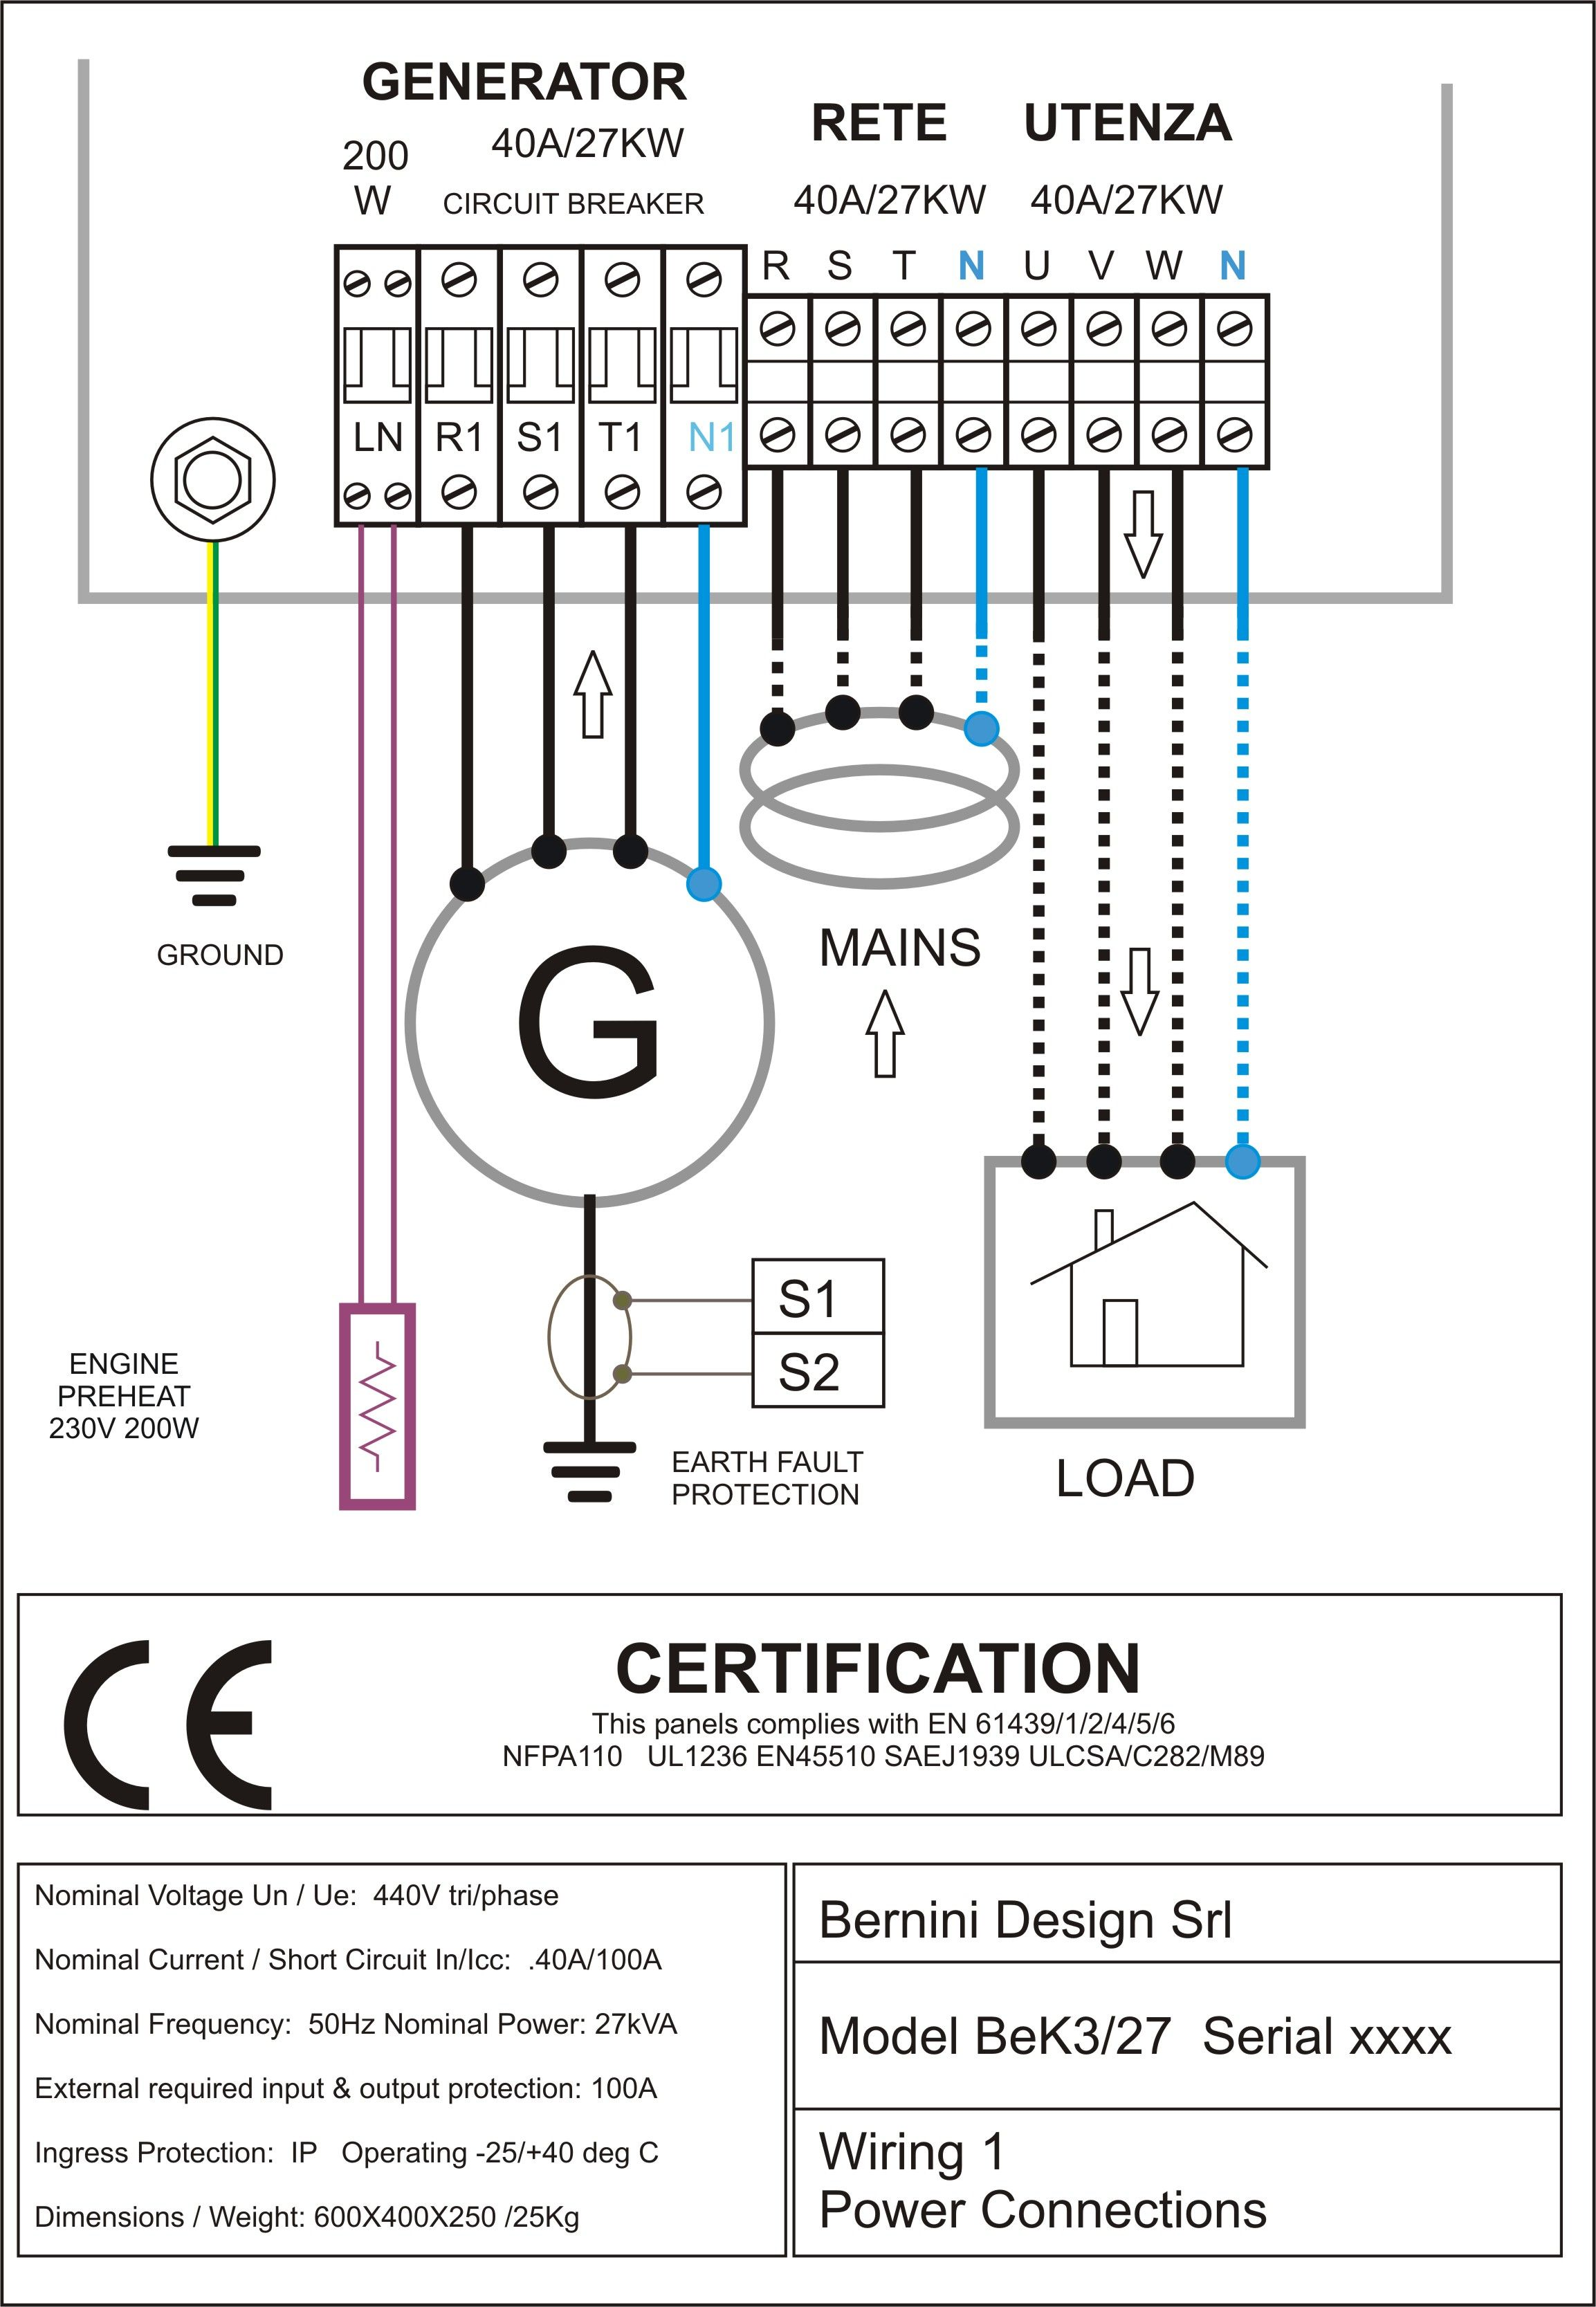 e789bca93f9142d48250ddc66668a81d diesel generator control panel wiring diagram ac connections gr generator control panel wiring diagram at gsmportal.co